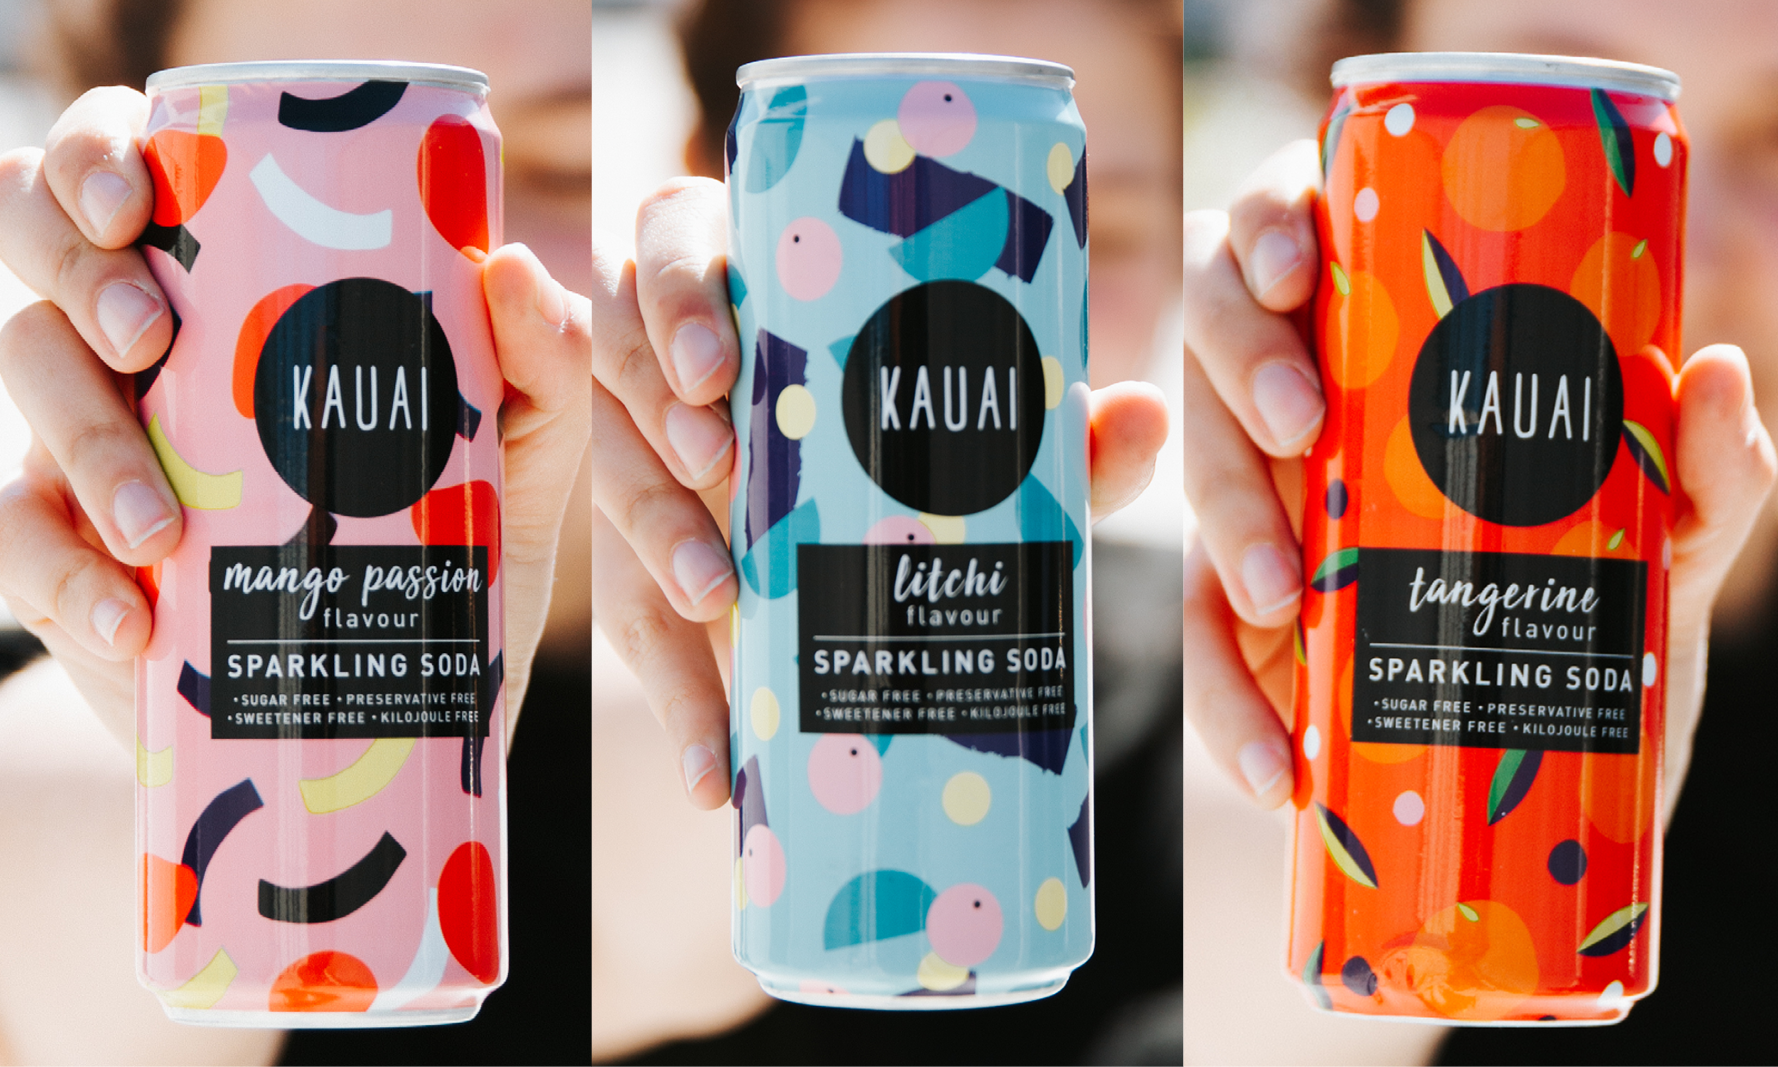 Kauai Sparkling Soda | Food Trends